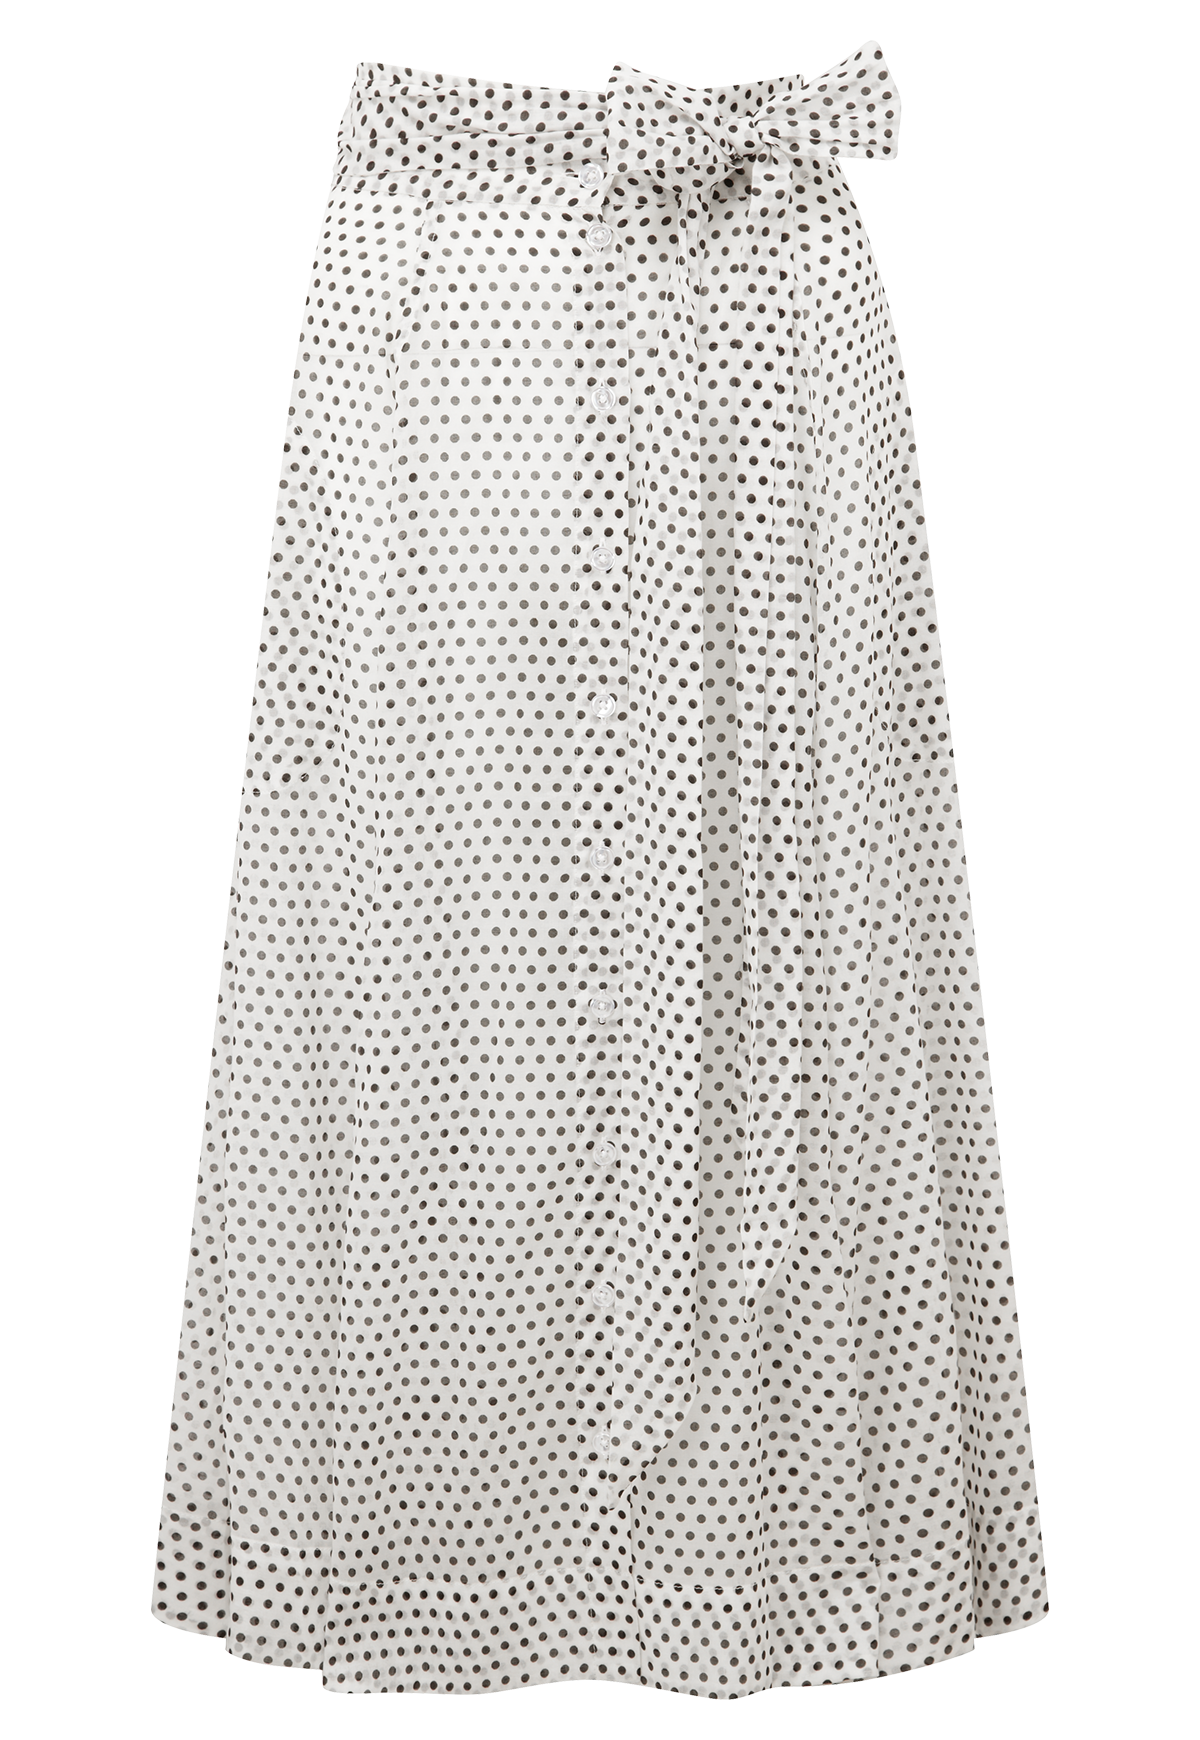 af6370b57ee32 WHITE POLKA DOT BEACH SKIRT – Lisa Marie Fernandez